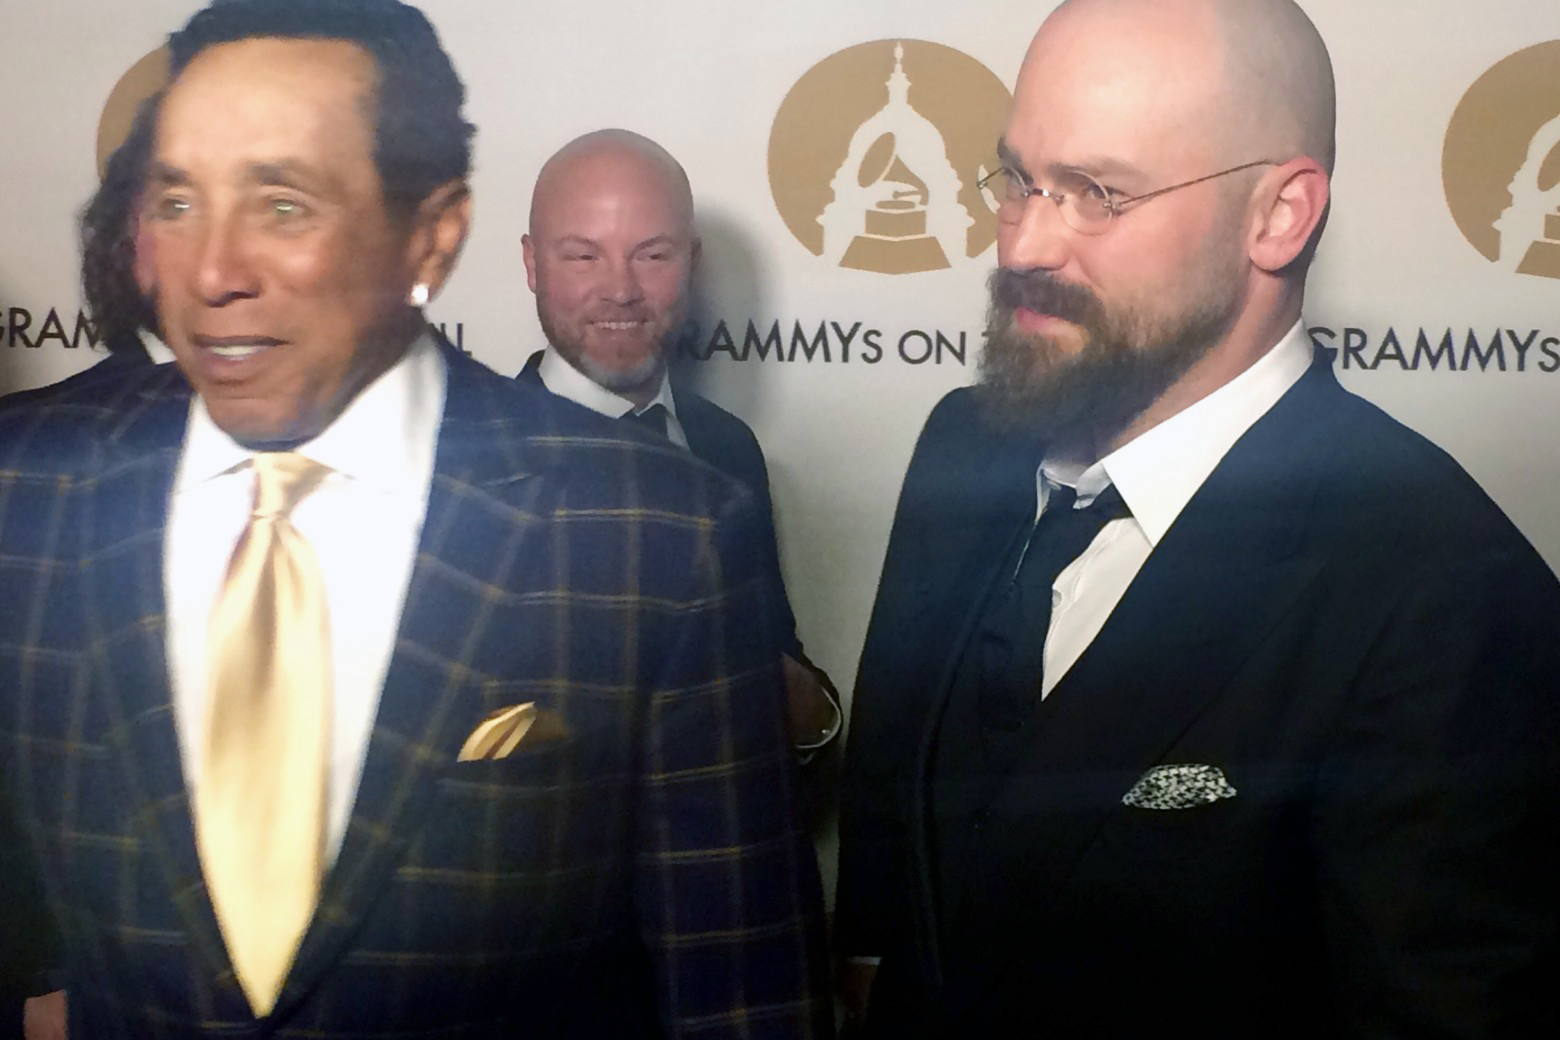 Smokey Robinson and Zac Brown attend the 2016 Grammys on the Hill event at The Hamilton in Washington D.C. (WTOP/Jason Fraley)